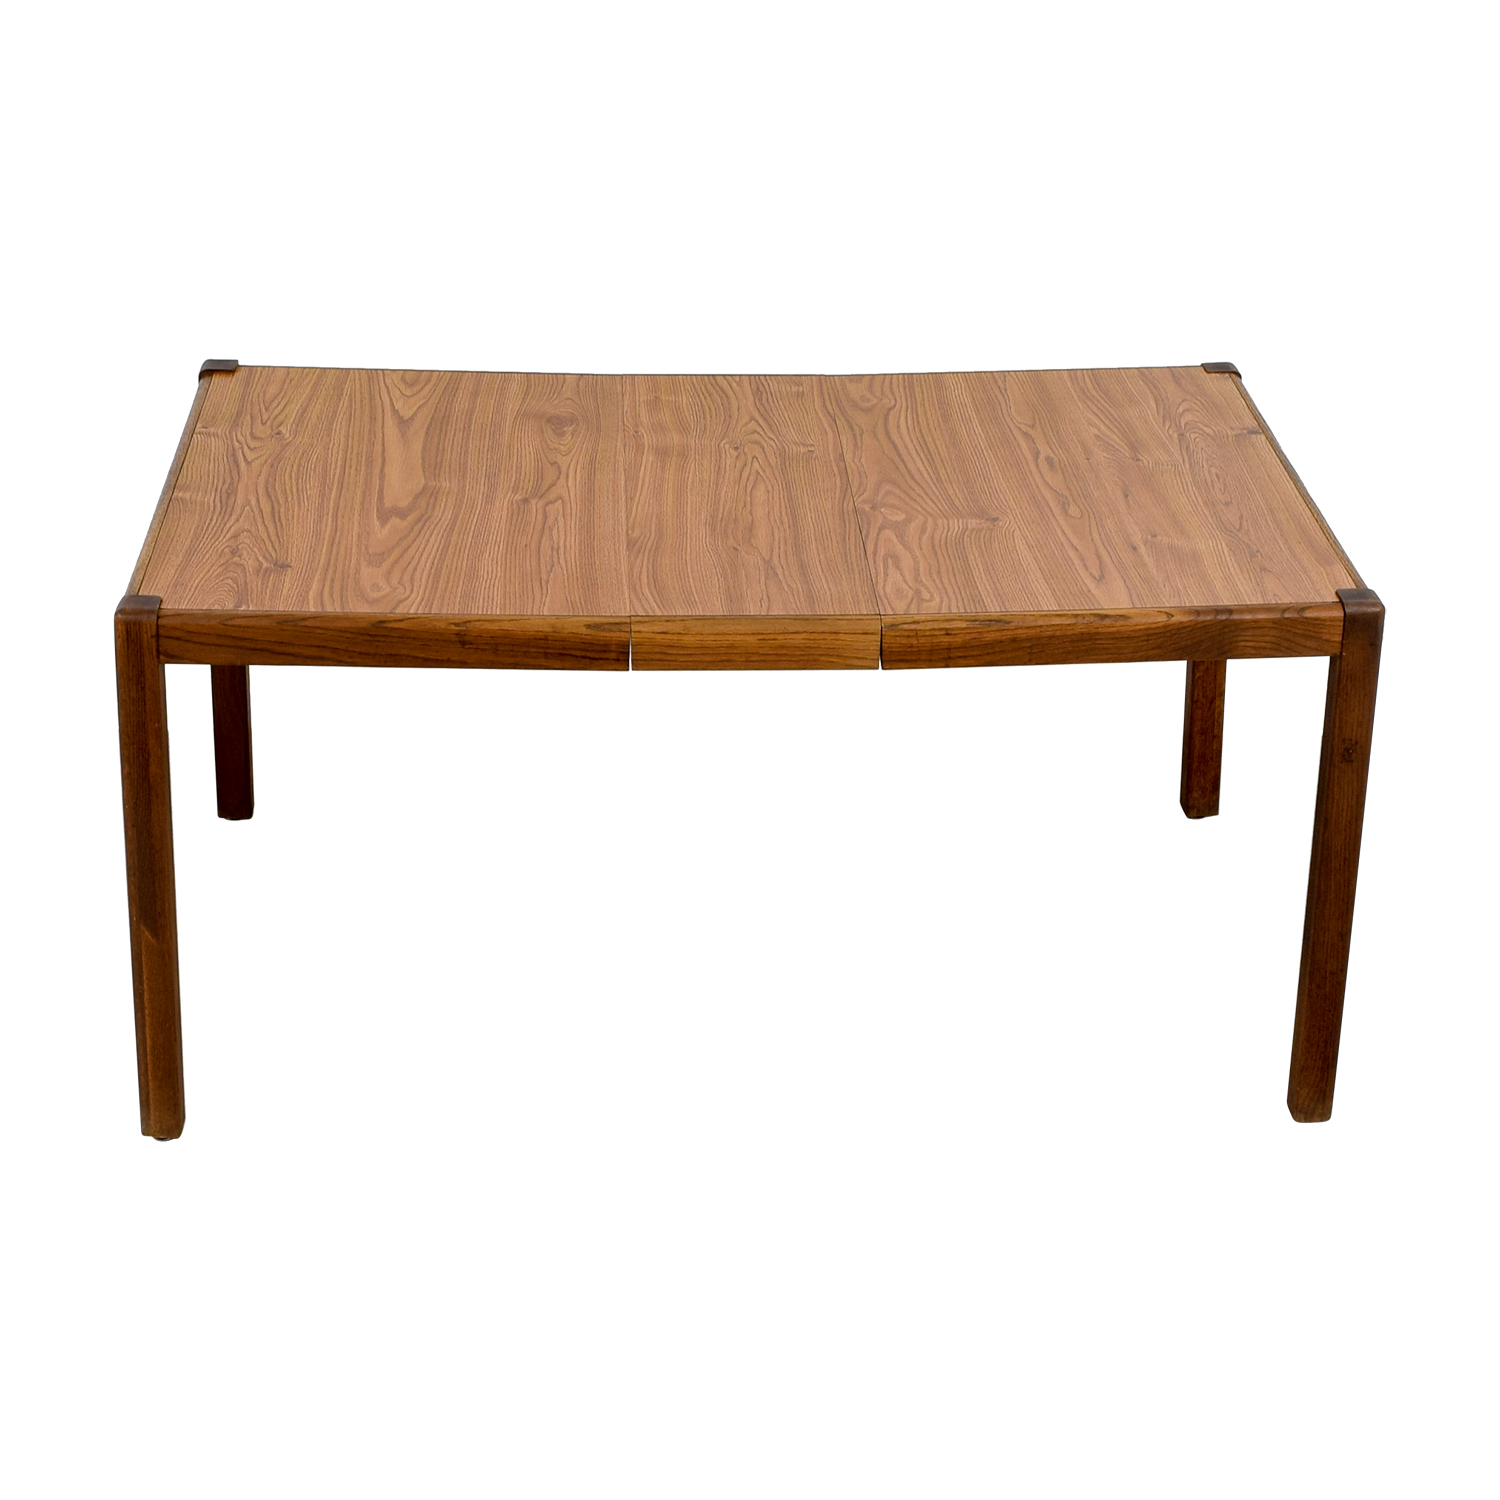 Oak Base with Veneer Top Expanding Dining Table dimensions